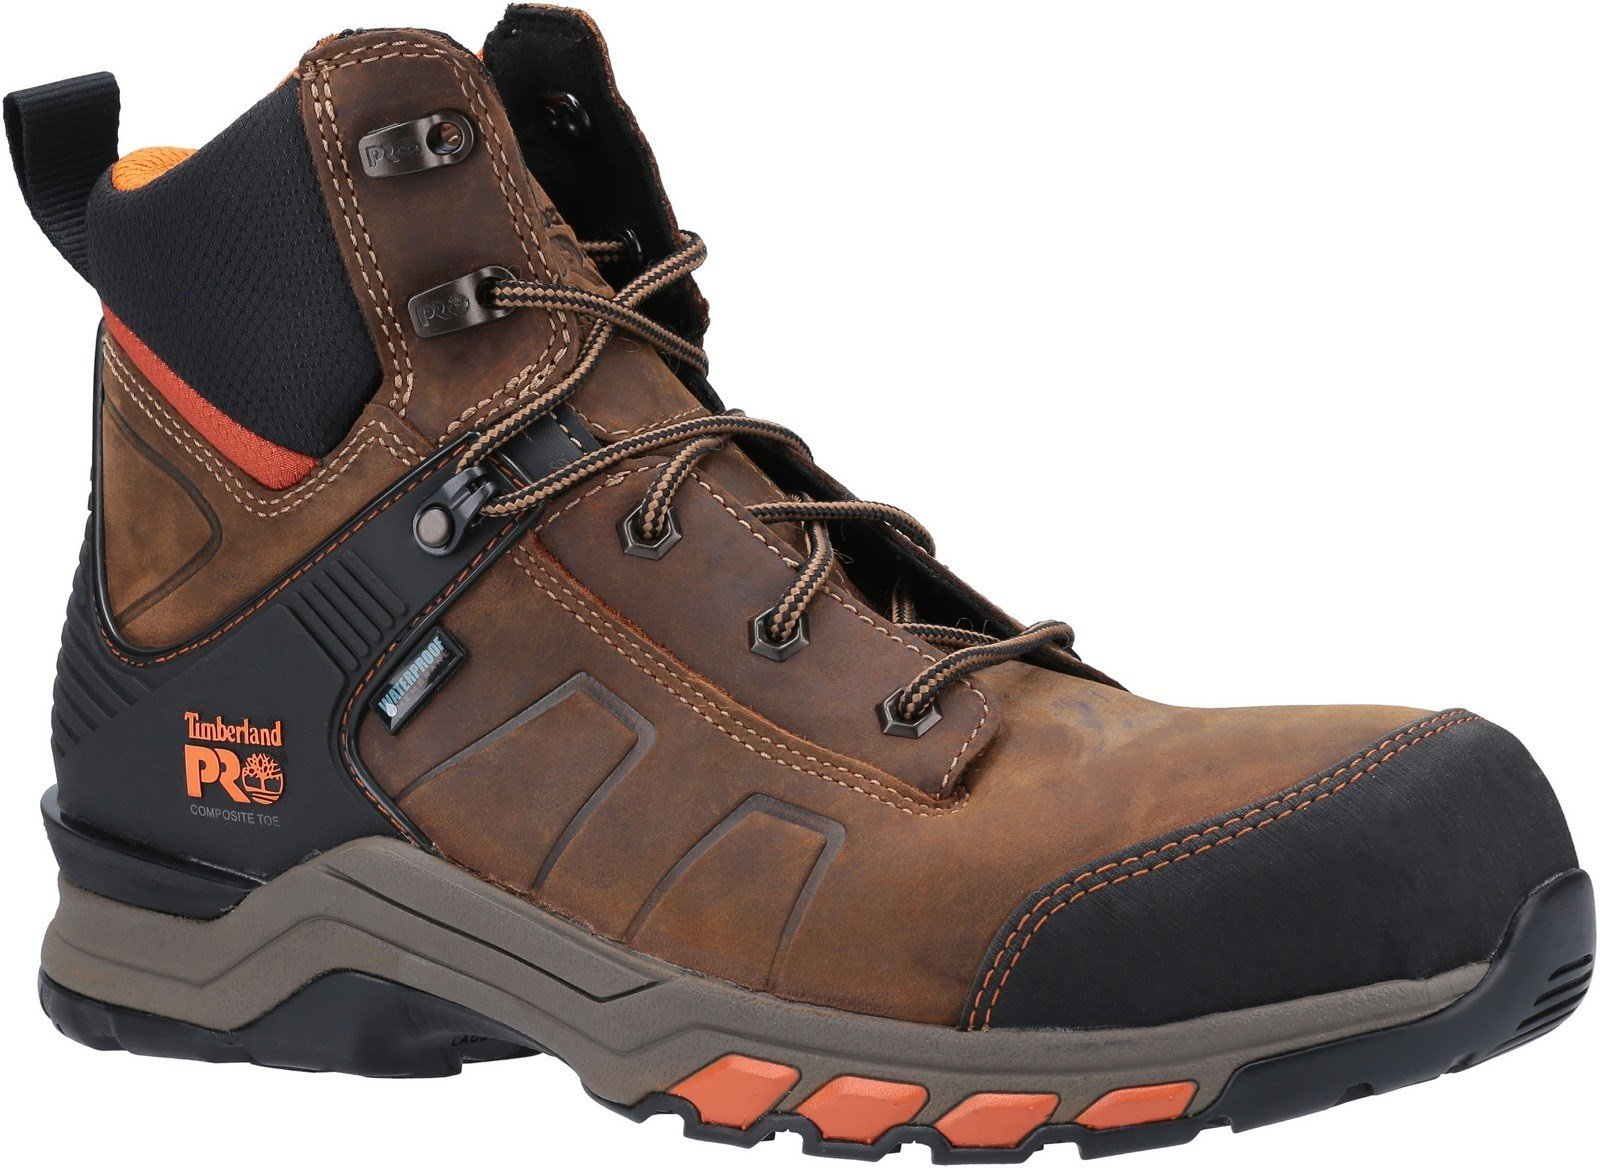 Timberland Pro Men's Hypercharge Safety Toe Work Boot Various Colours 30948 - Brown/Orange 10.5